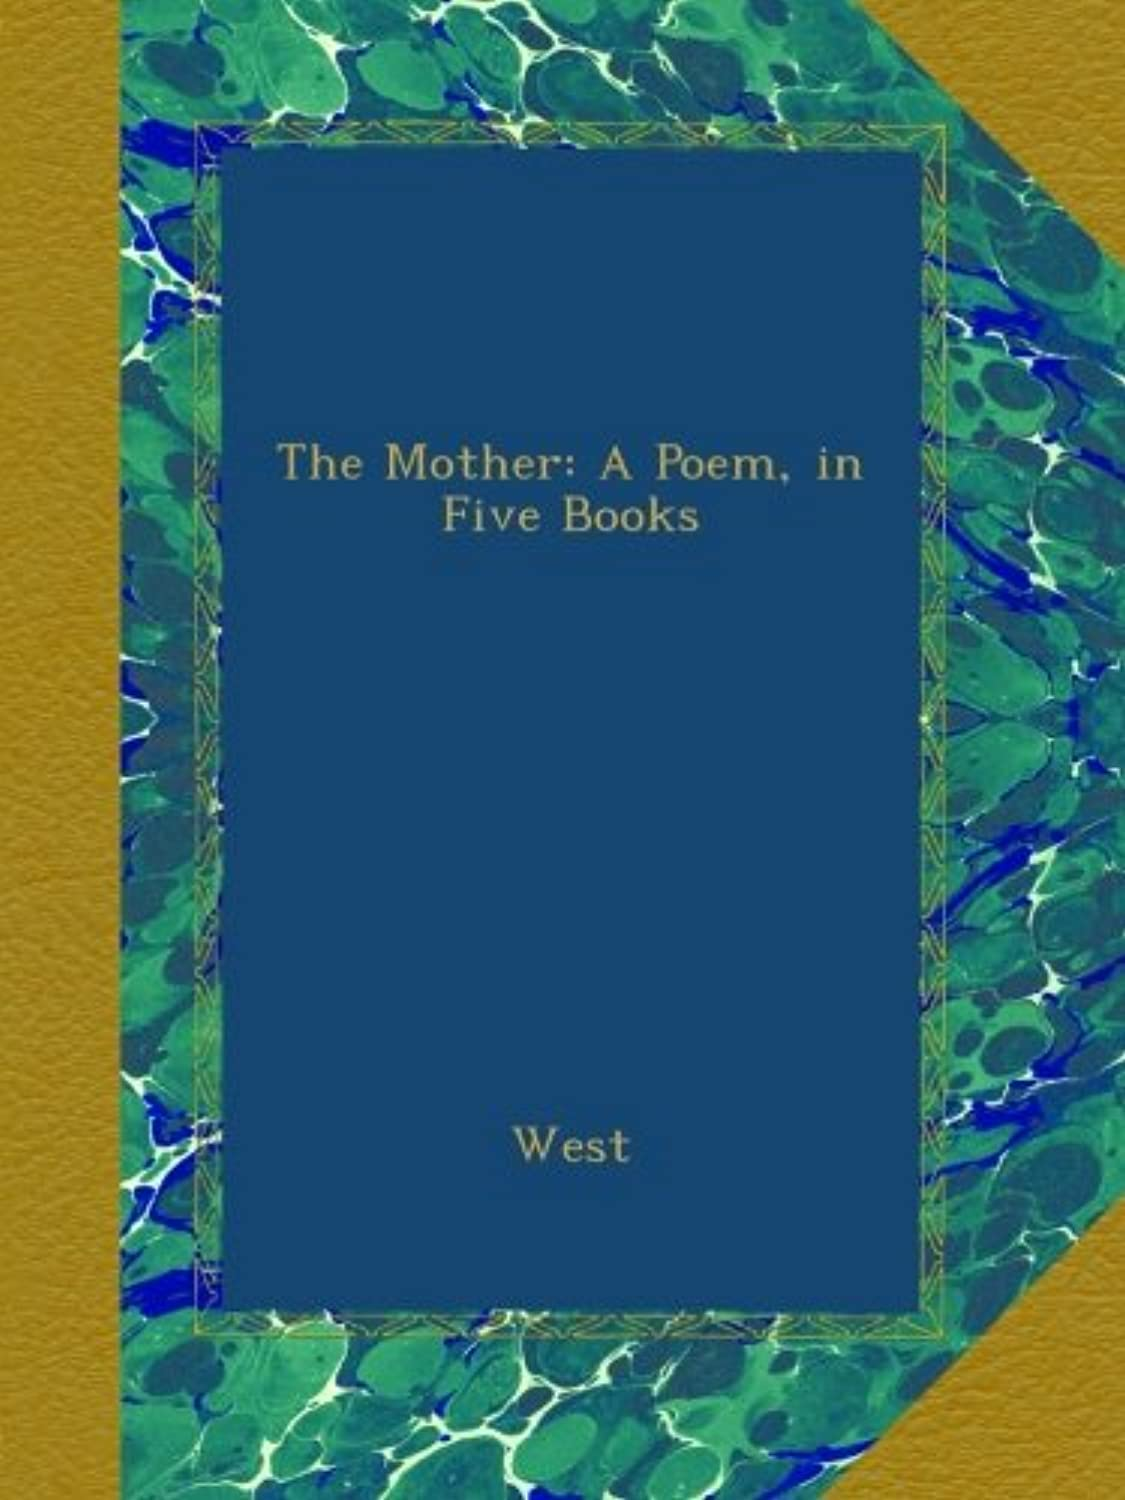 The Mother: A Poem, in Five Books